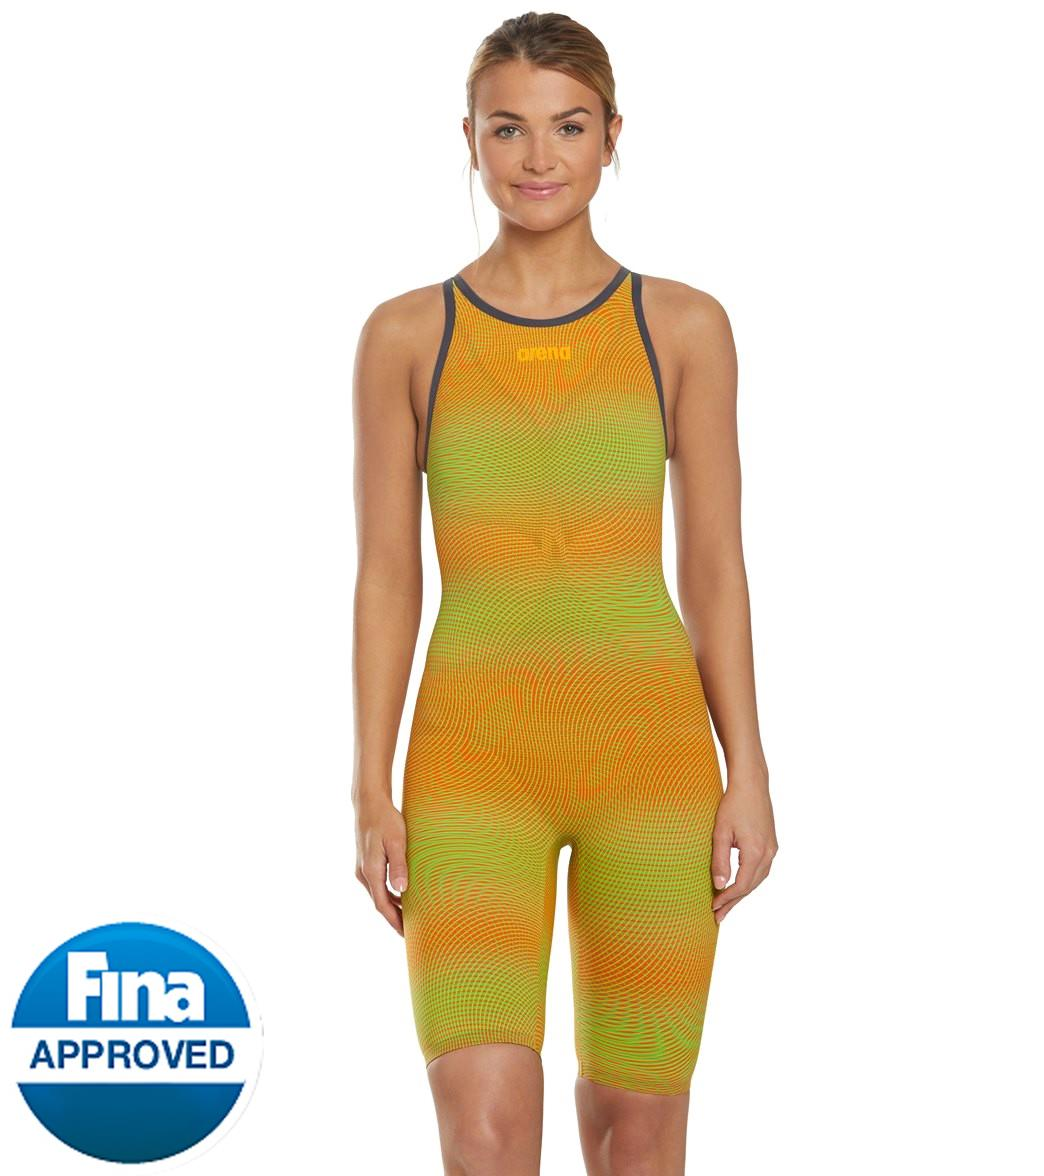 Arena Carbon Air 2 women's distance tech suit